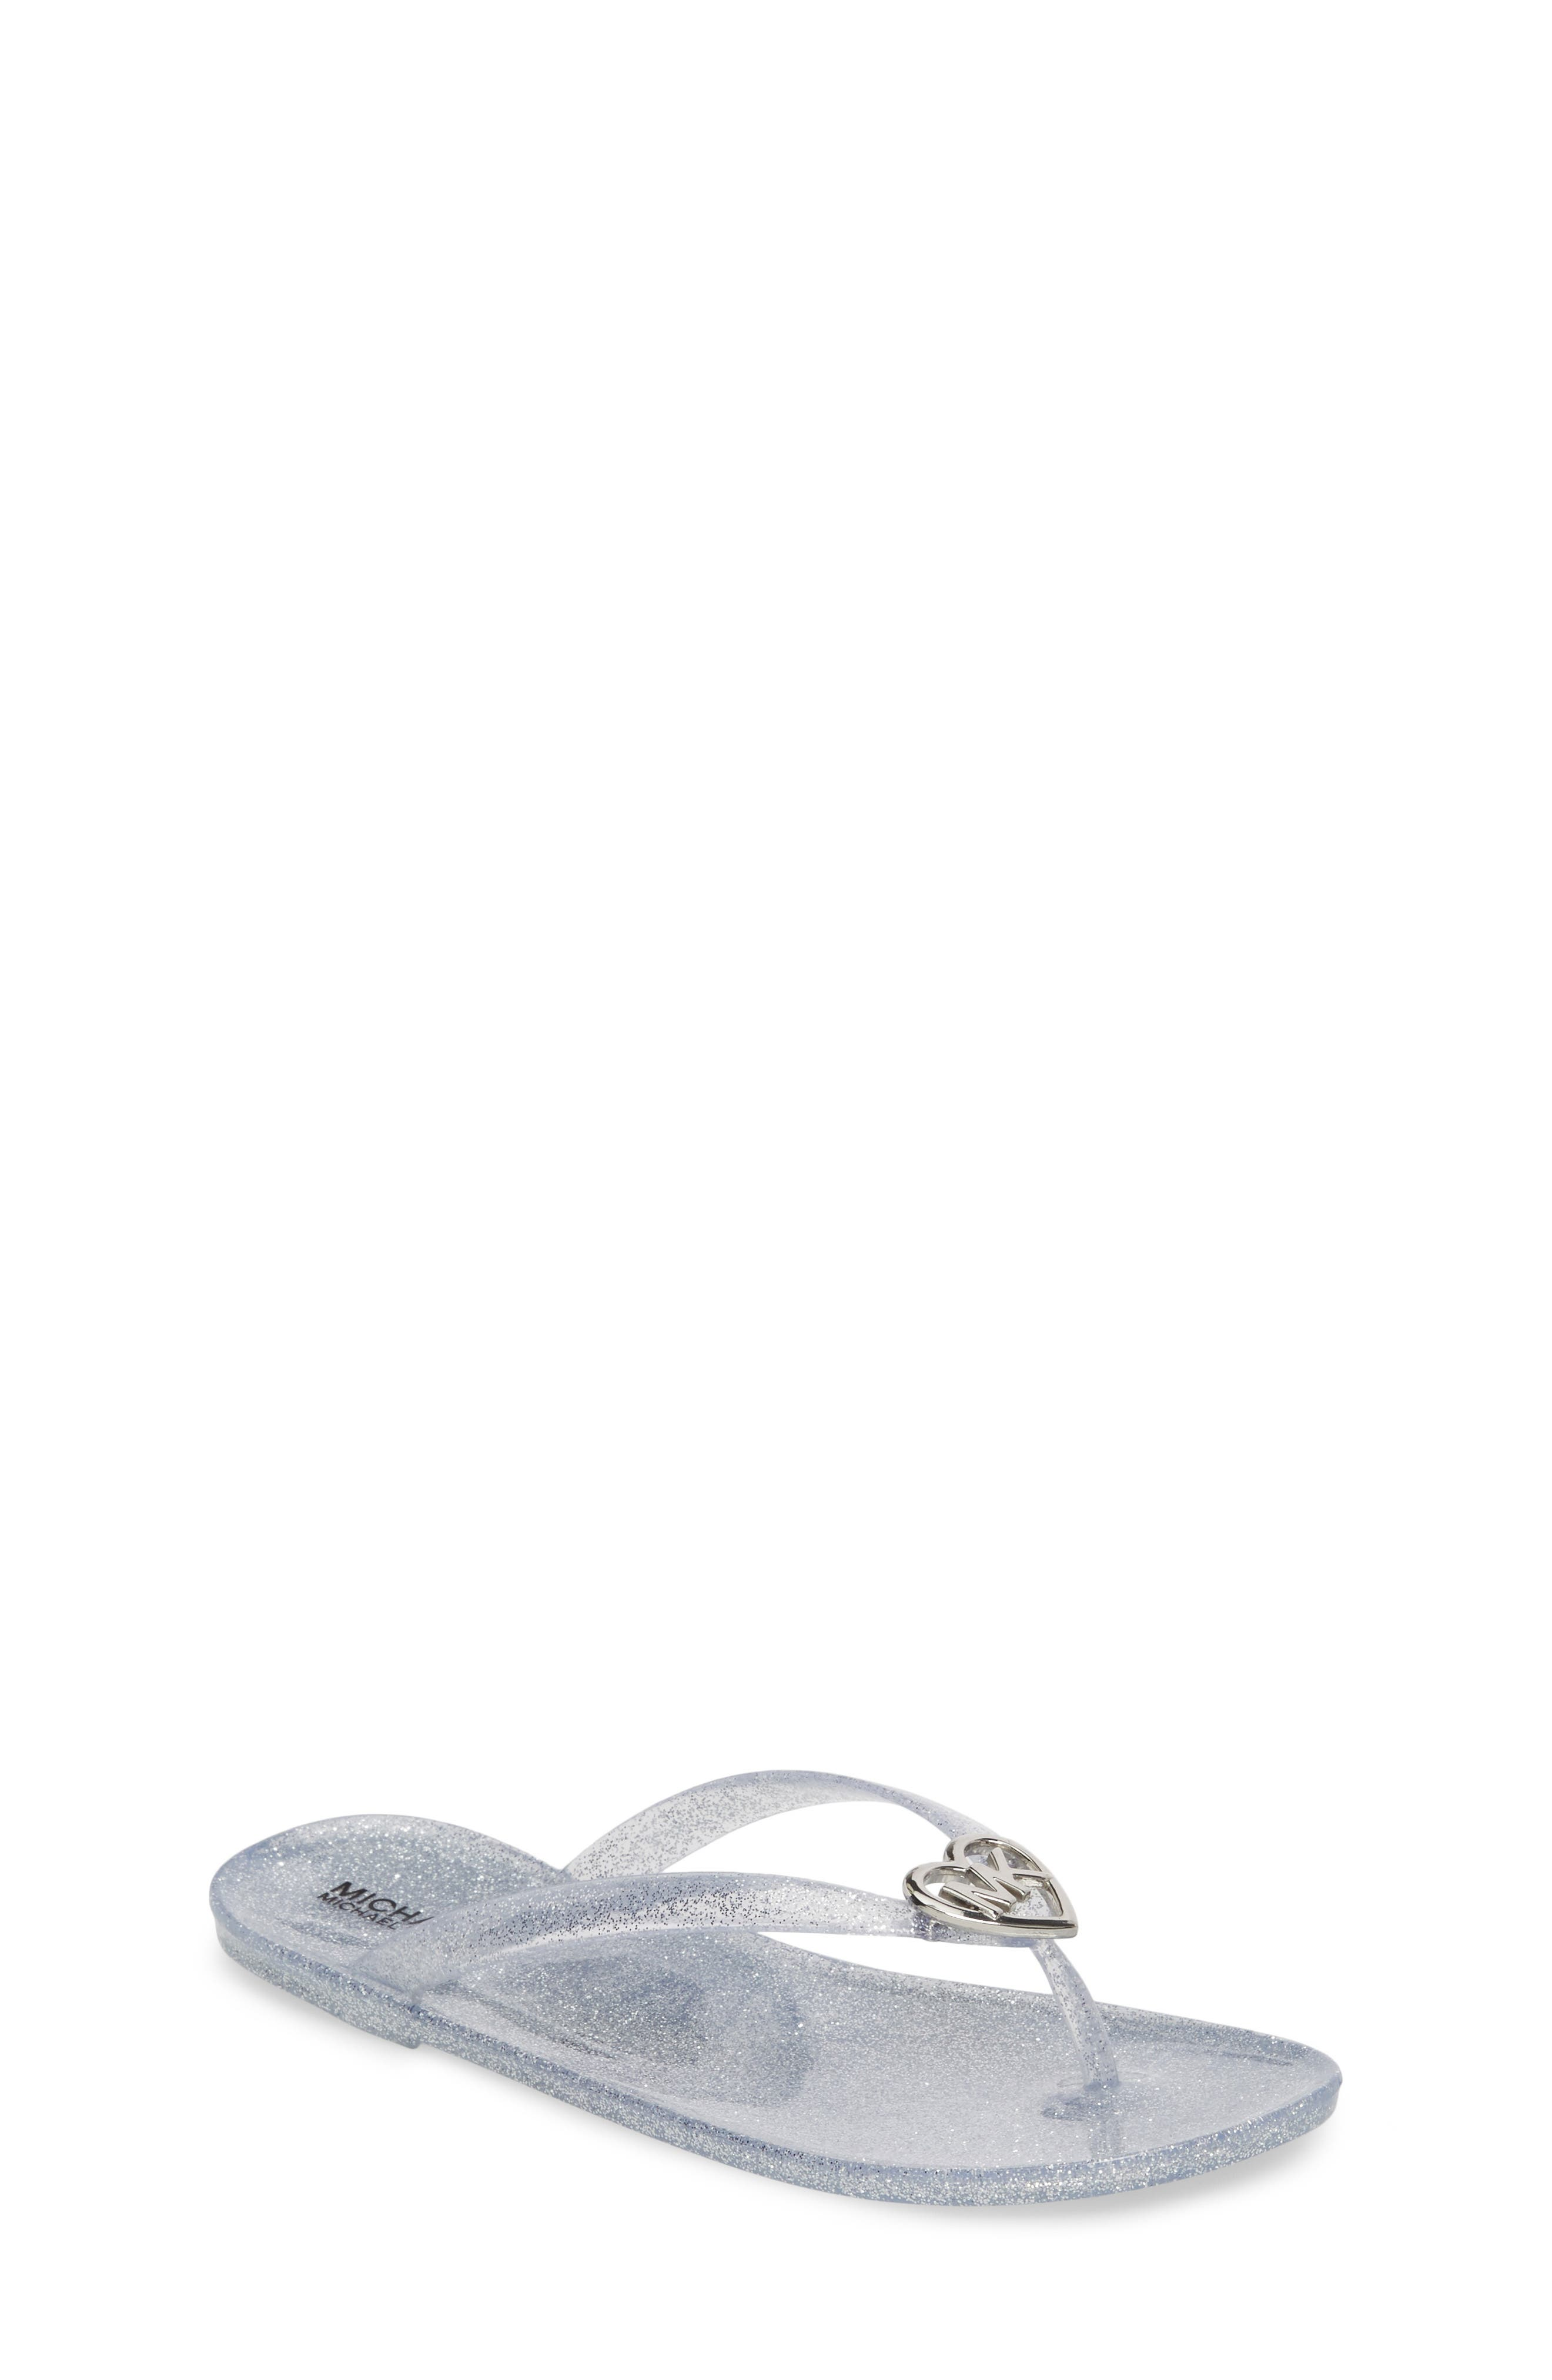 Trish Glare Glitter Flip Flop,                         Main,                         color, Silver Glitter